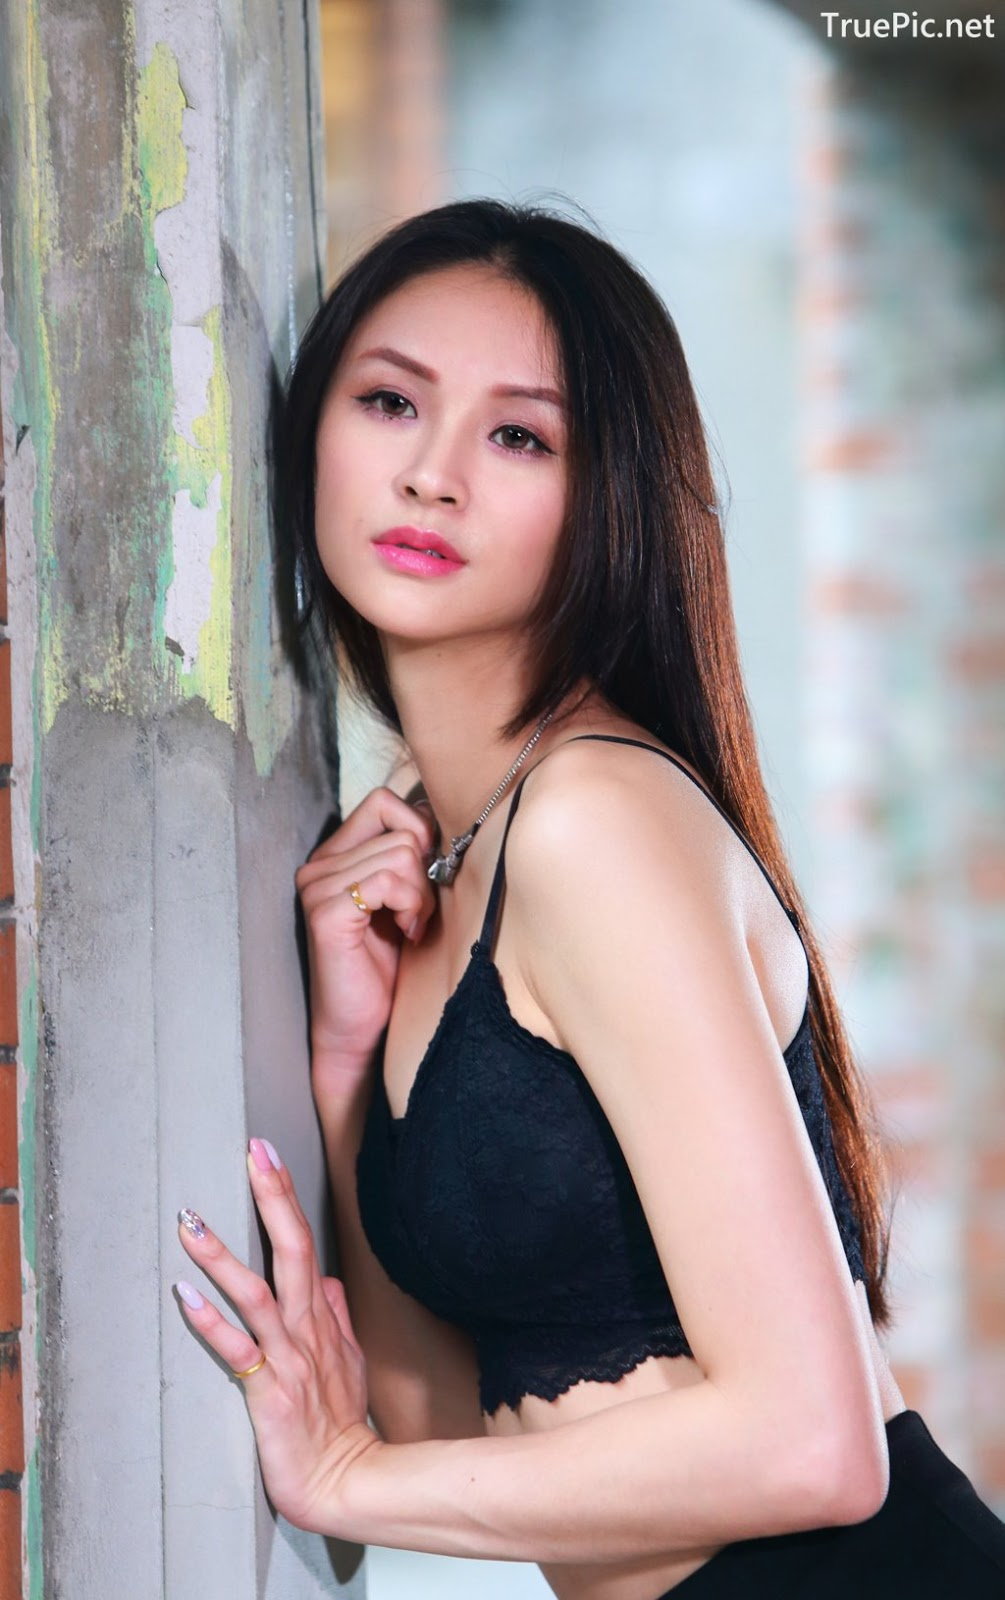 Image-Taiwanese-Beautiful-Long-Legs-Girl-雪岑Lola-Black-Sexy-Short-Pants-and-Crop-Top-Outfit-TruePic.net- Picture-30